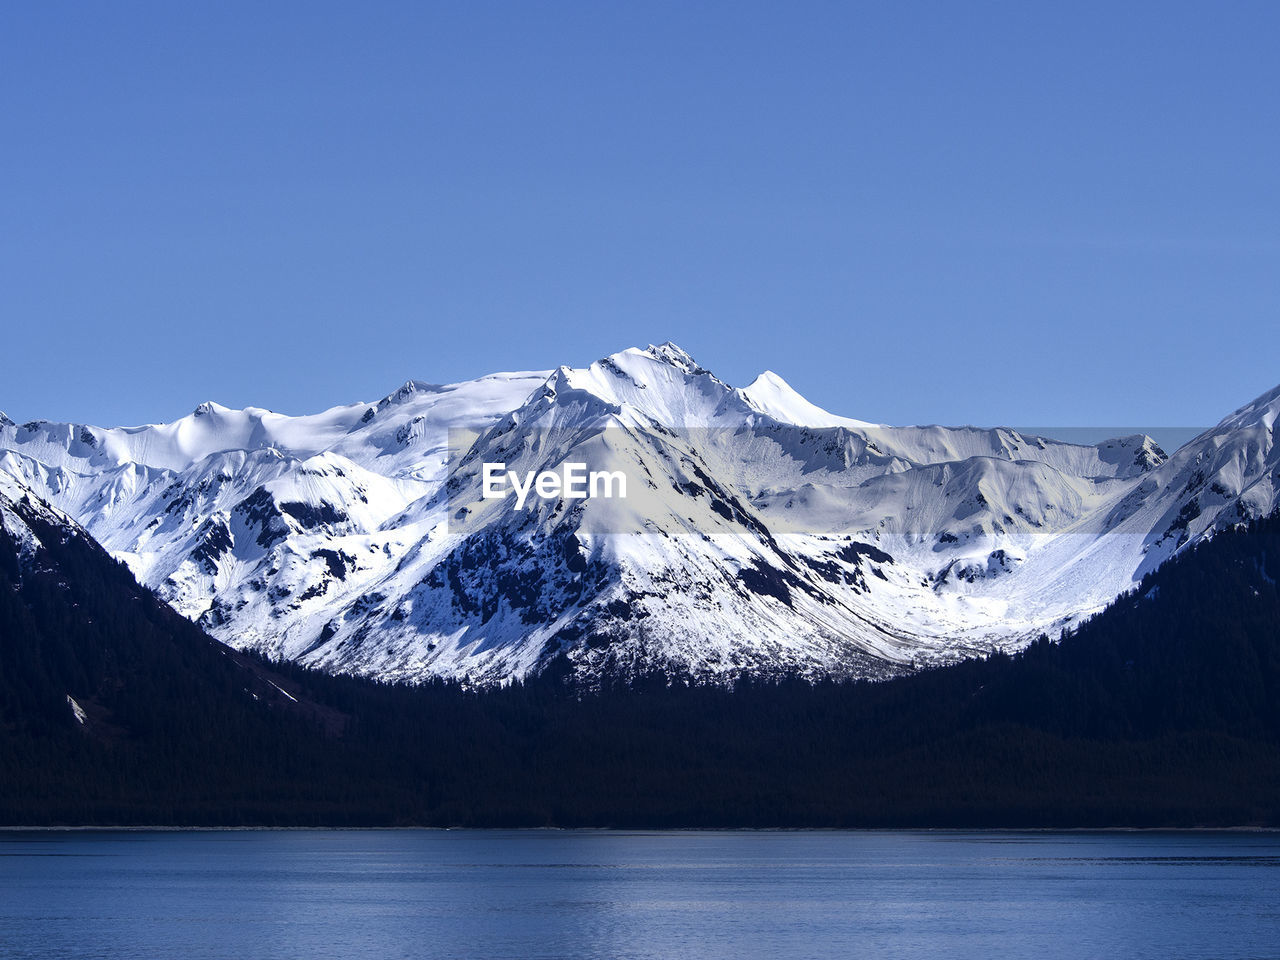 Idyllic shot of snowcapped mountain by river against clear blue sky